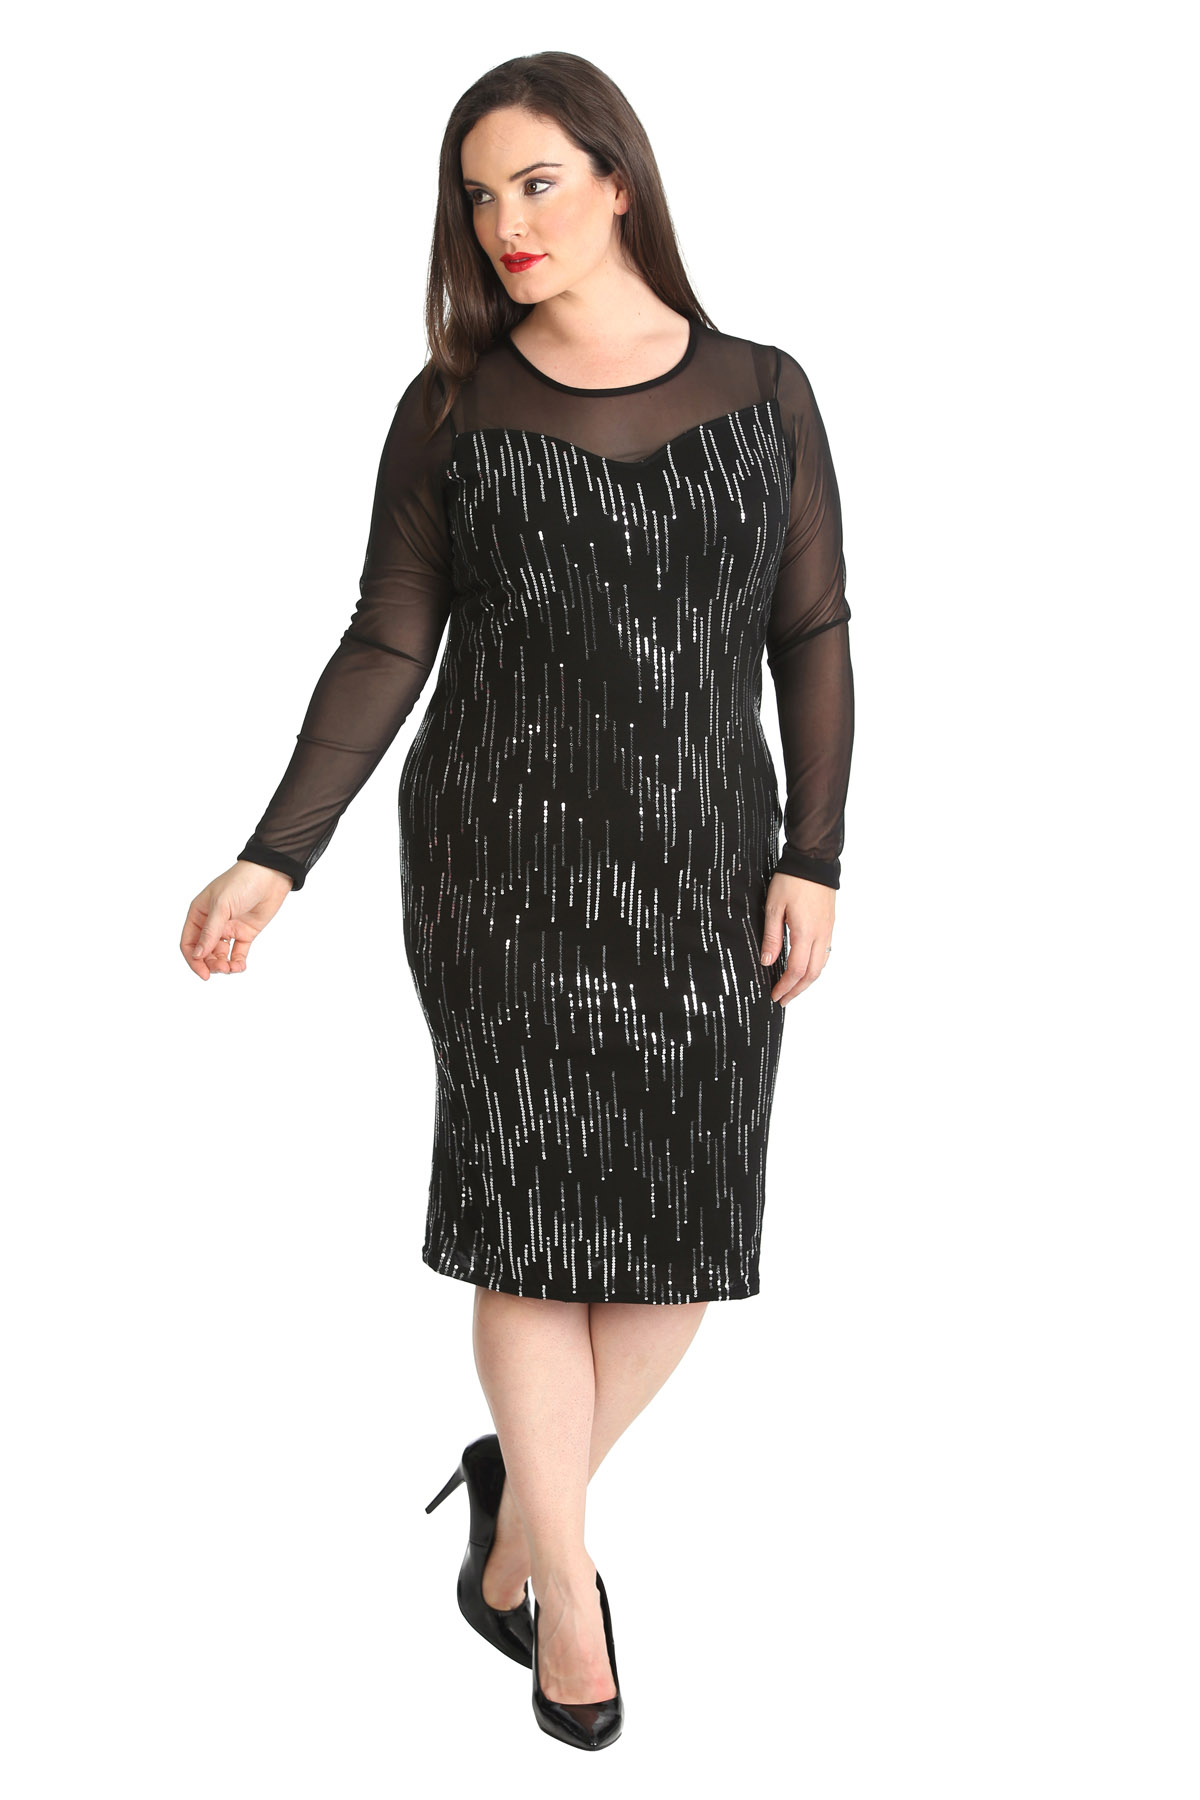 Find Sequin dresses from the Womens department at Debenhams. Shop a wide range of Dresses products and more at our online shop today.